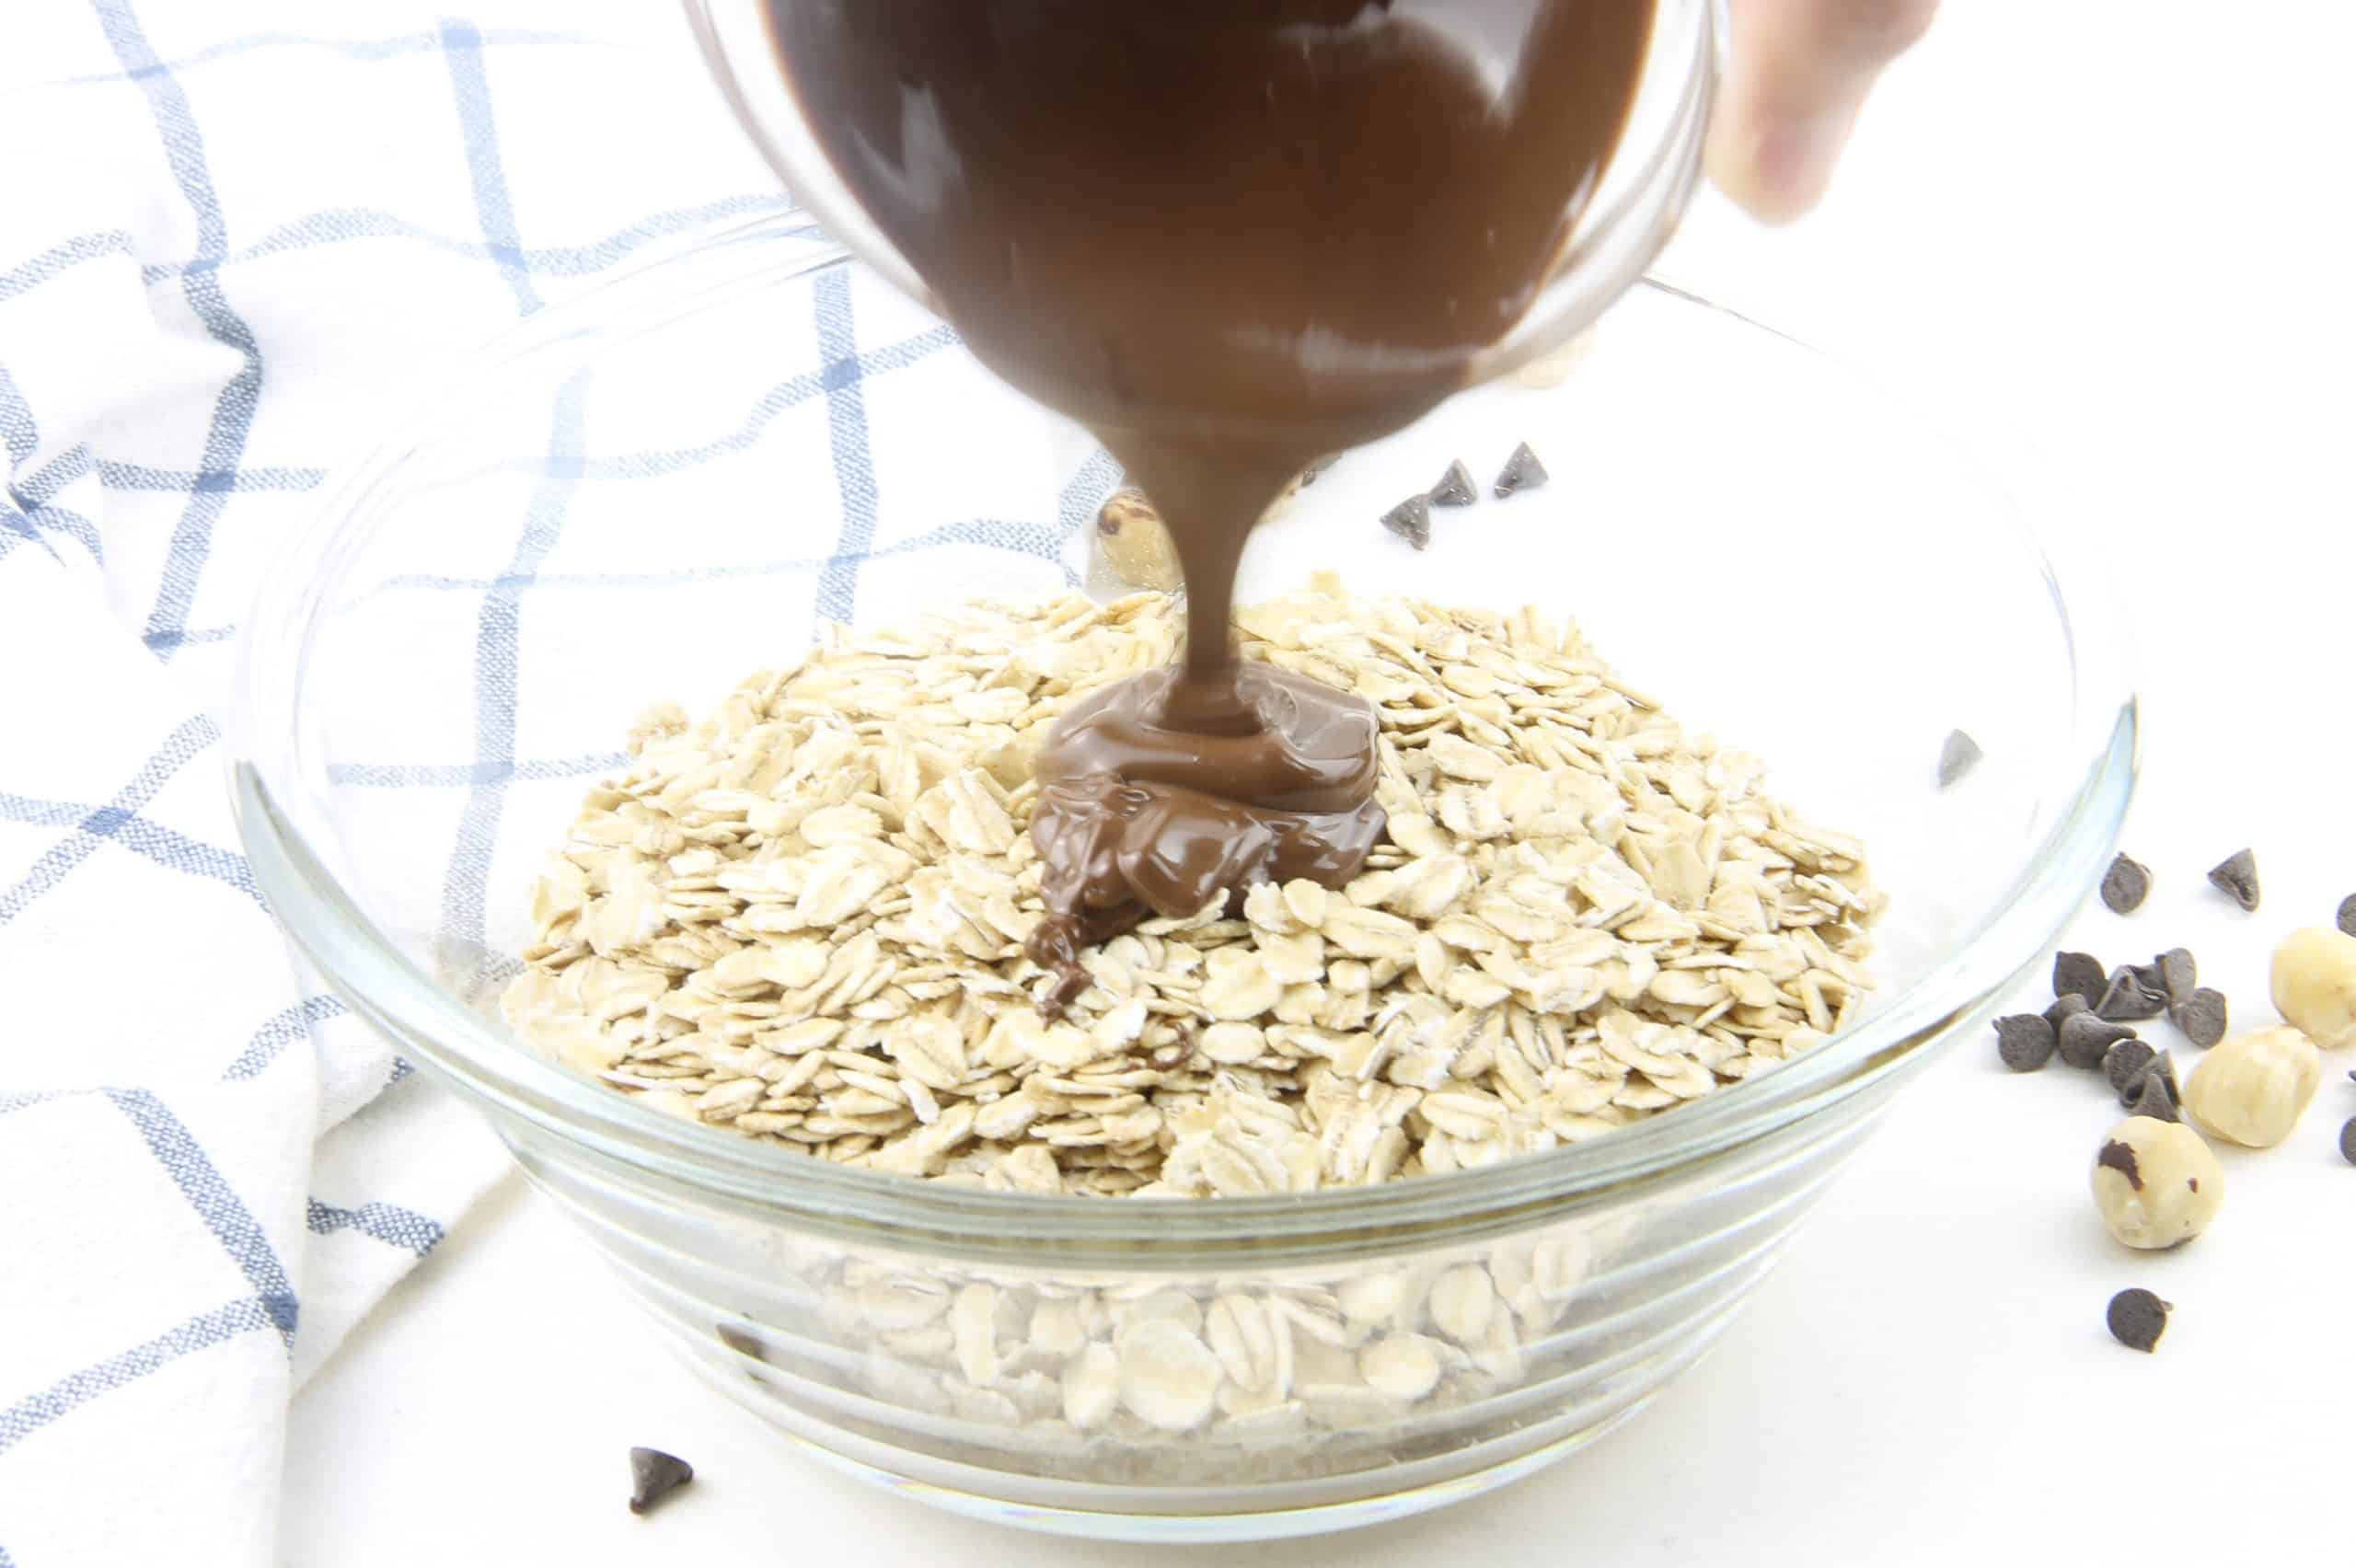 Chocolate Hazelnut Granola nutella being poured in bowl